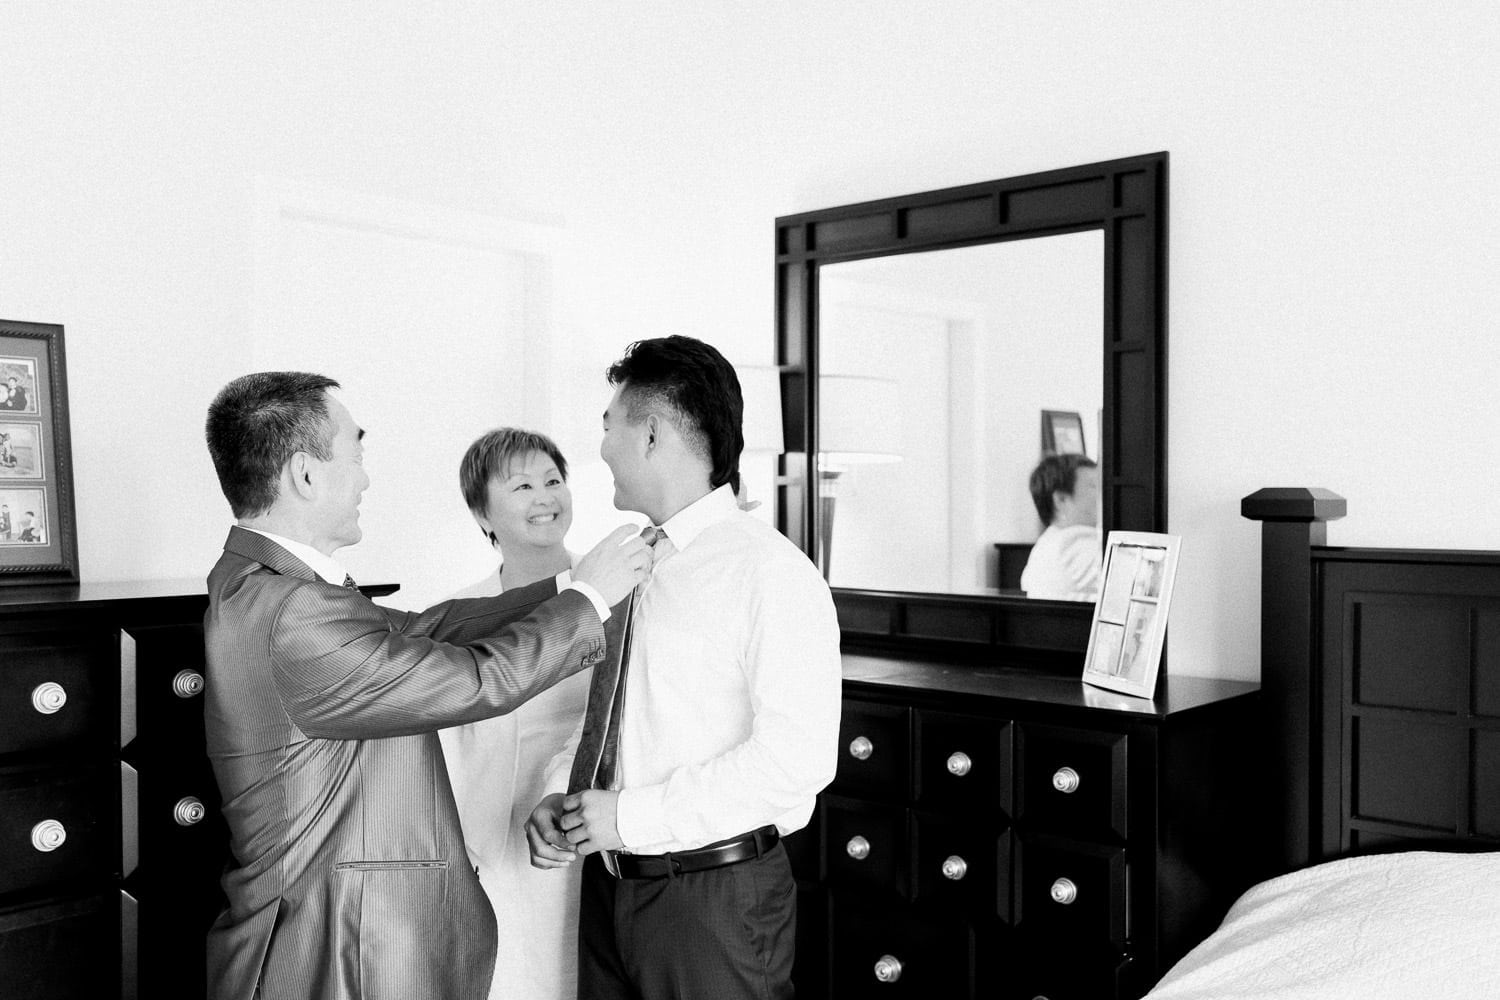 Groom's preparation with parents helping | Vancouver wedding photographer | Westwood Plateau Golf Club Wedding